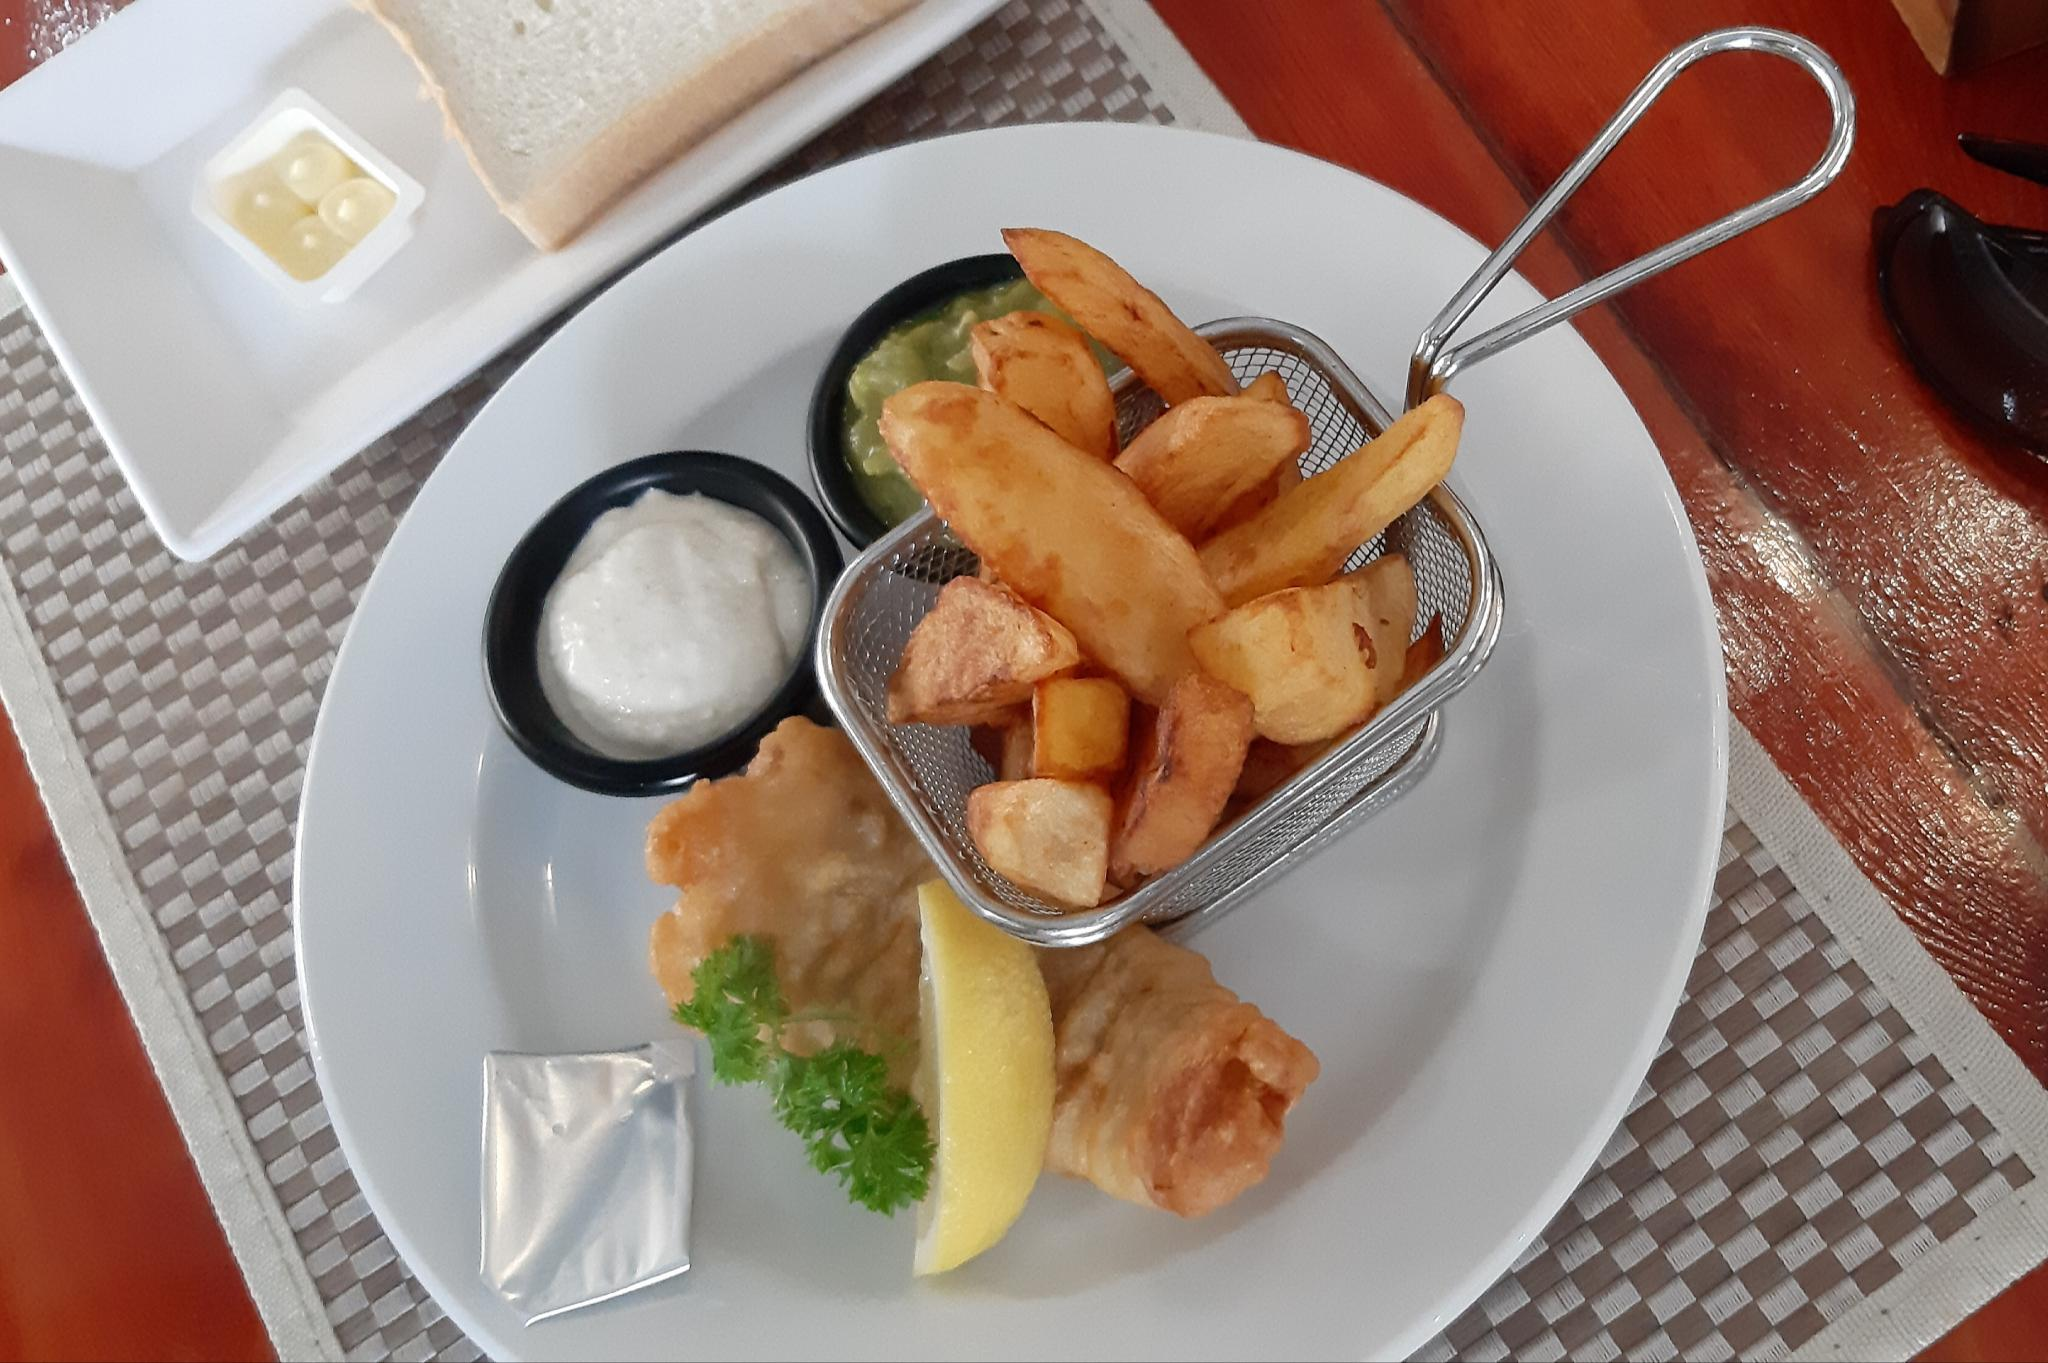 Lunch ... the second course-20210122_144455-jpg